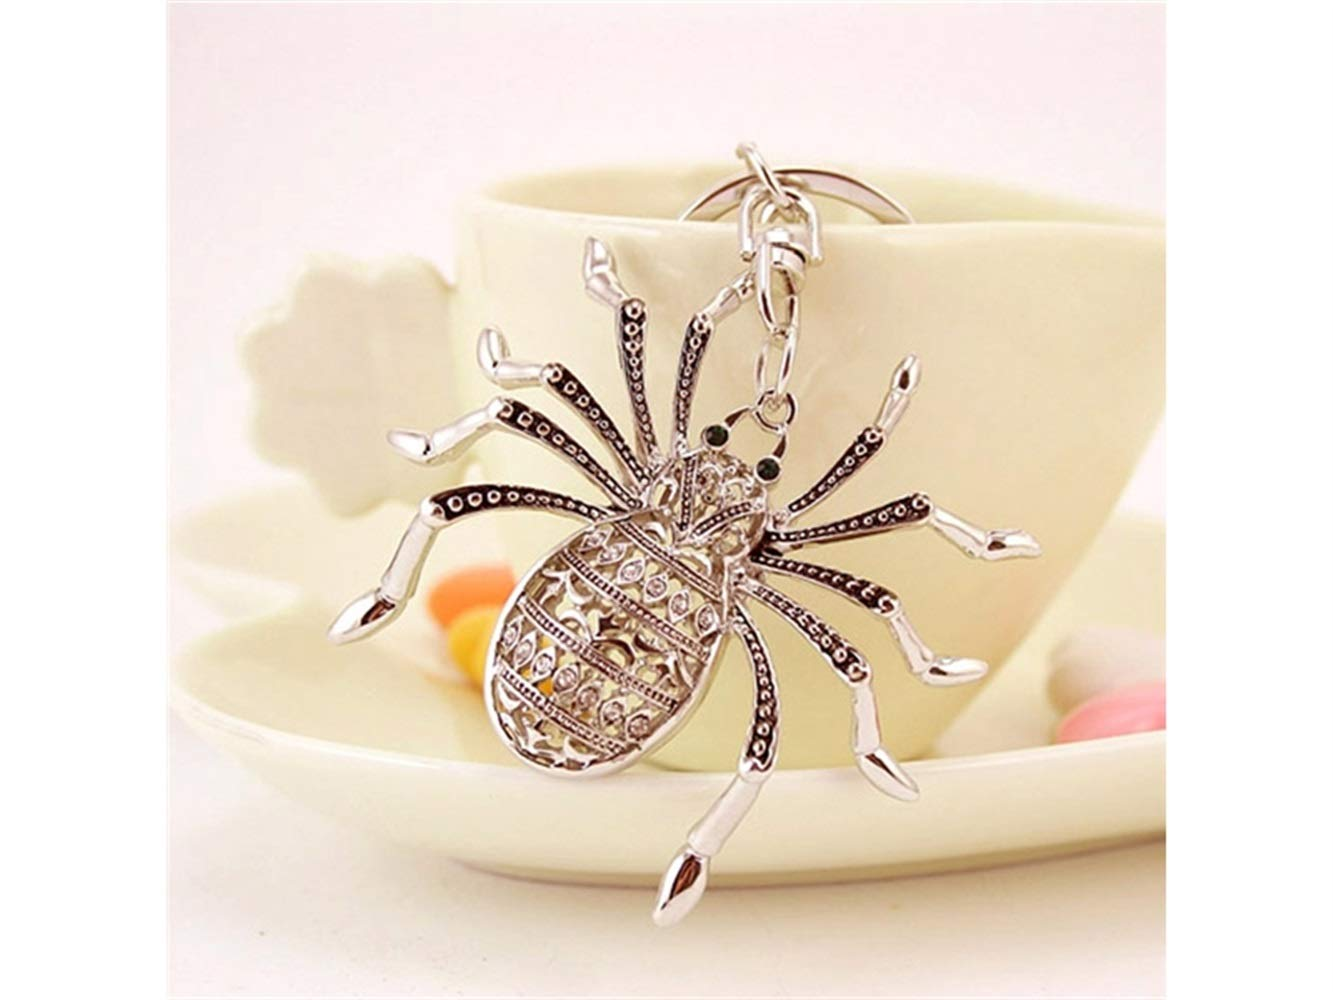 Car Keychain, Exquisite Personality Big Spider Keychain Animal Key Trinket Car Bag Key Holder Decorations(Silver) for Gift by Huasen (Image #2)